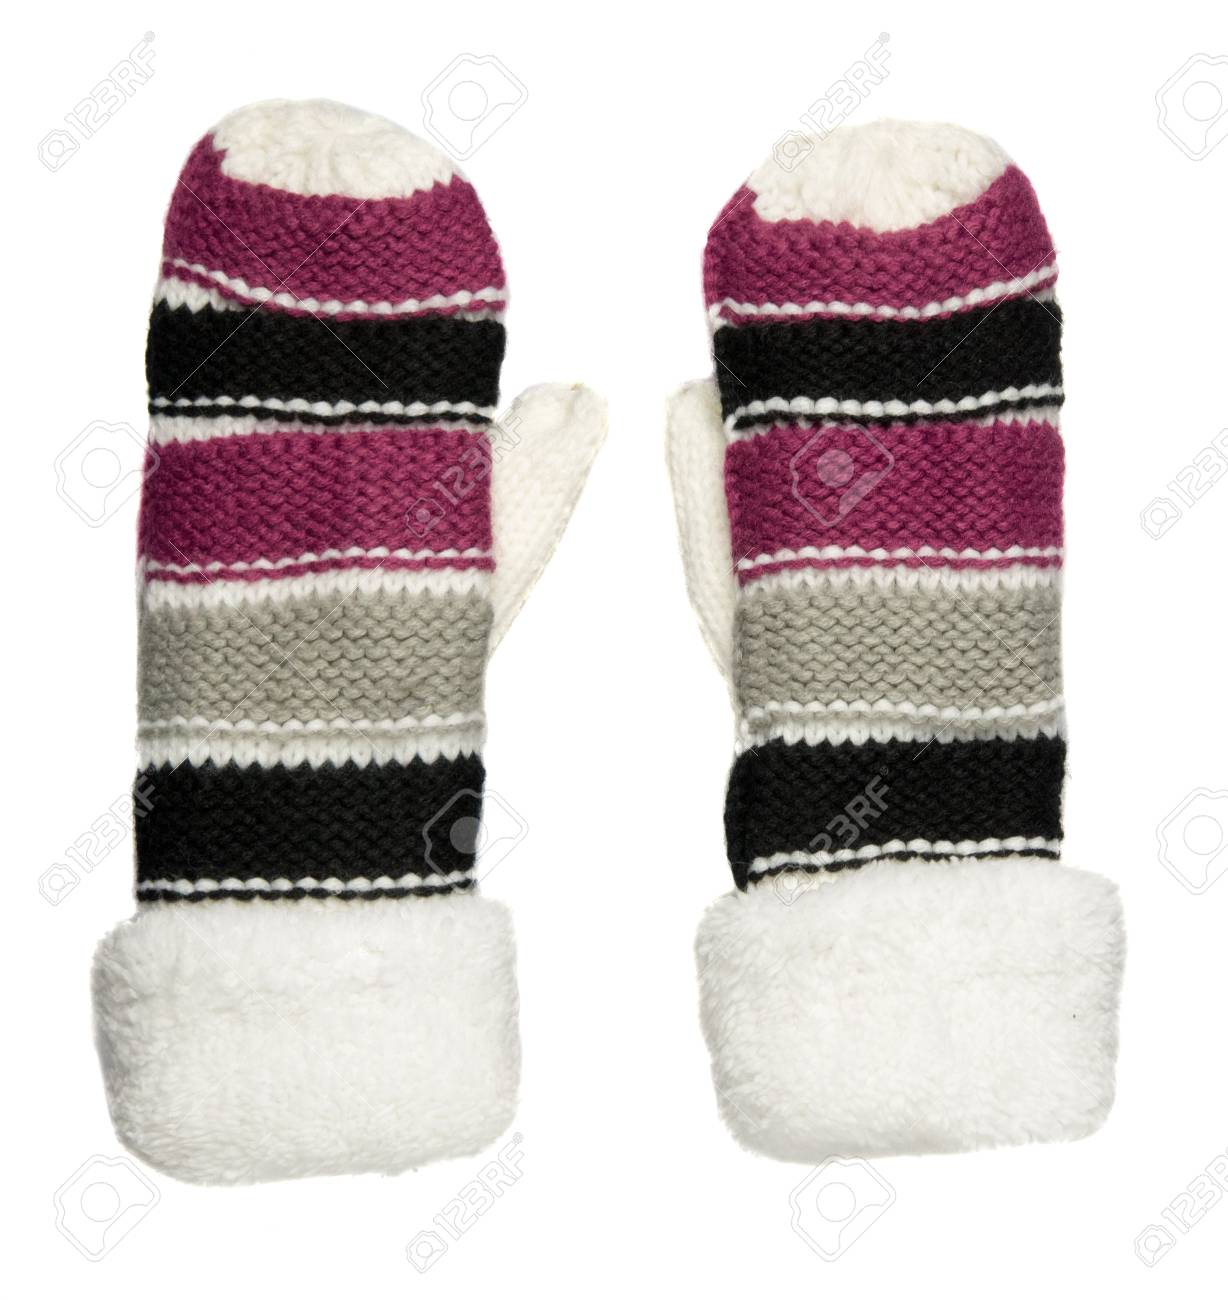 Mittens Isolated On White Background. Knitted Mittens. Mittens ...